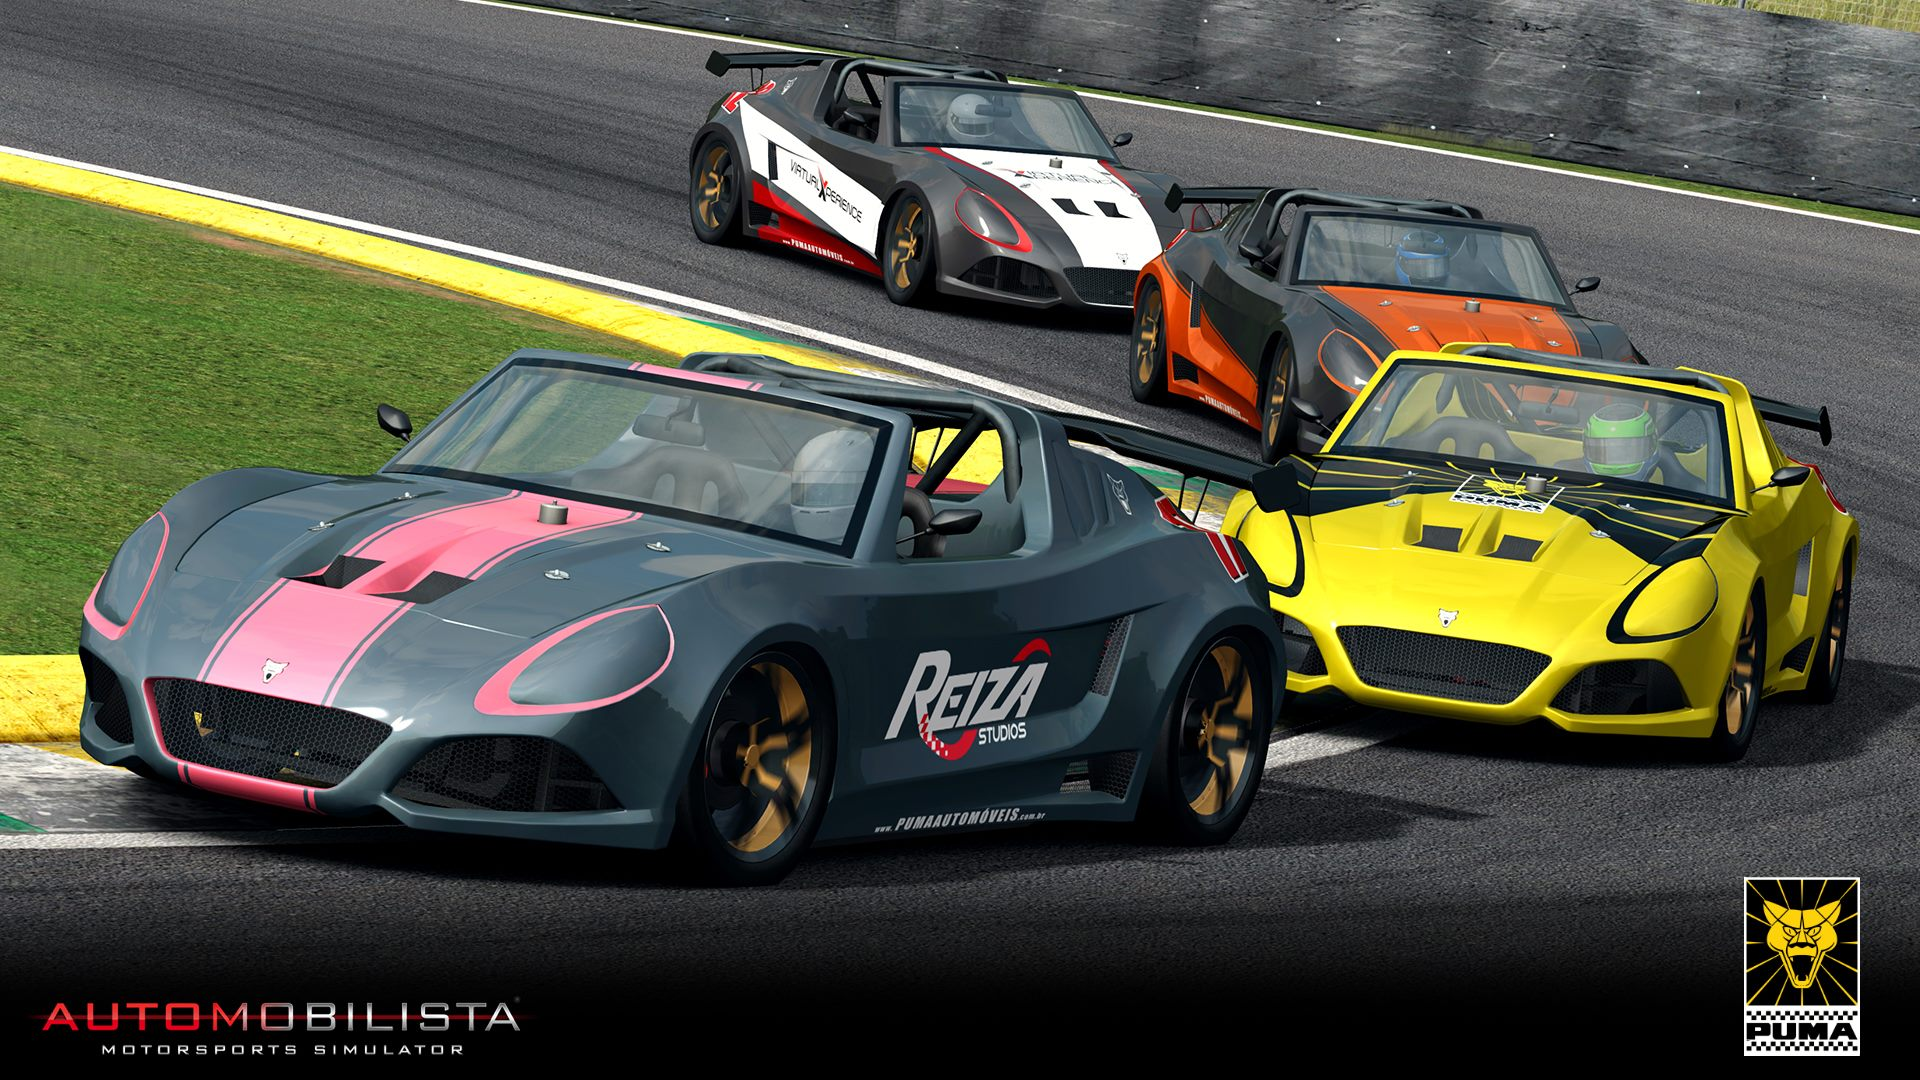 Download AutoMobilista 2 v1.1.0.5-P2P in PC [ Torrent ]